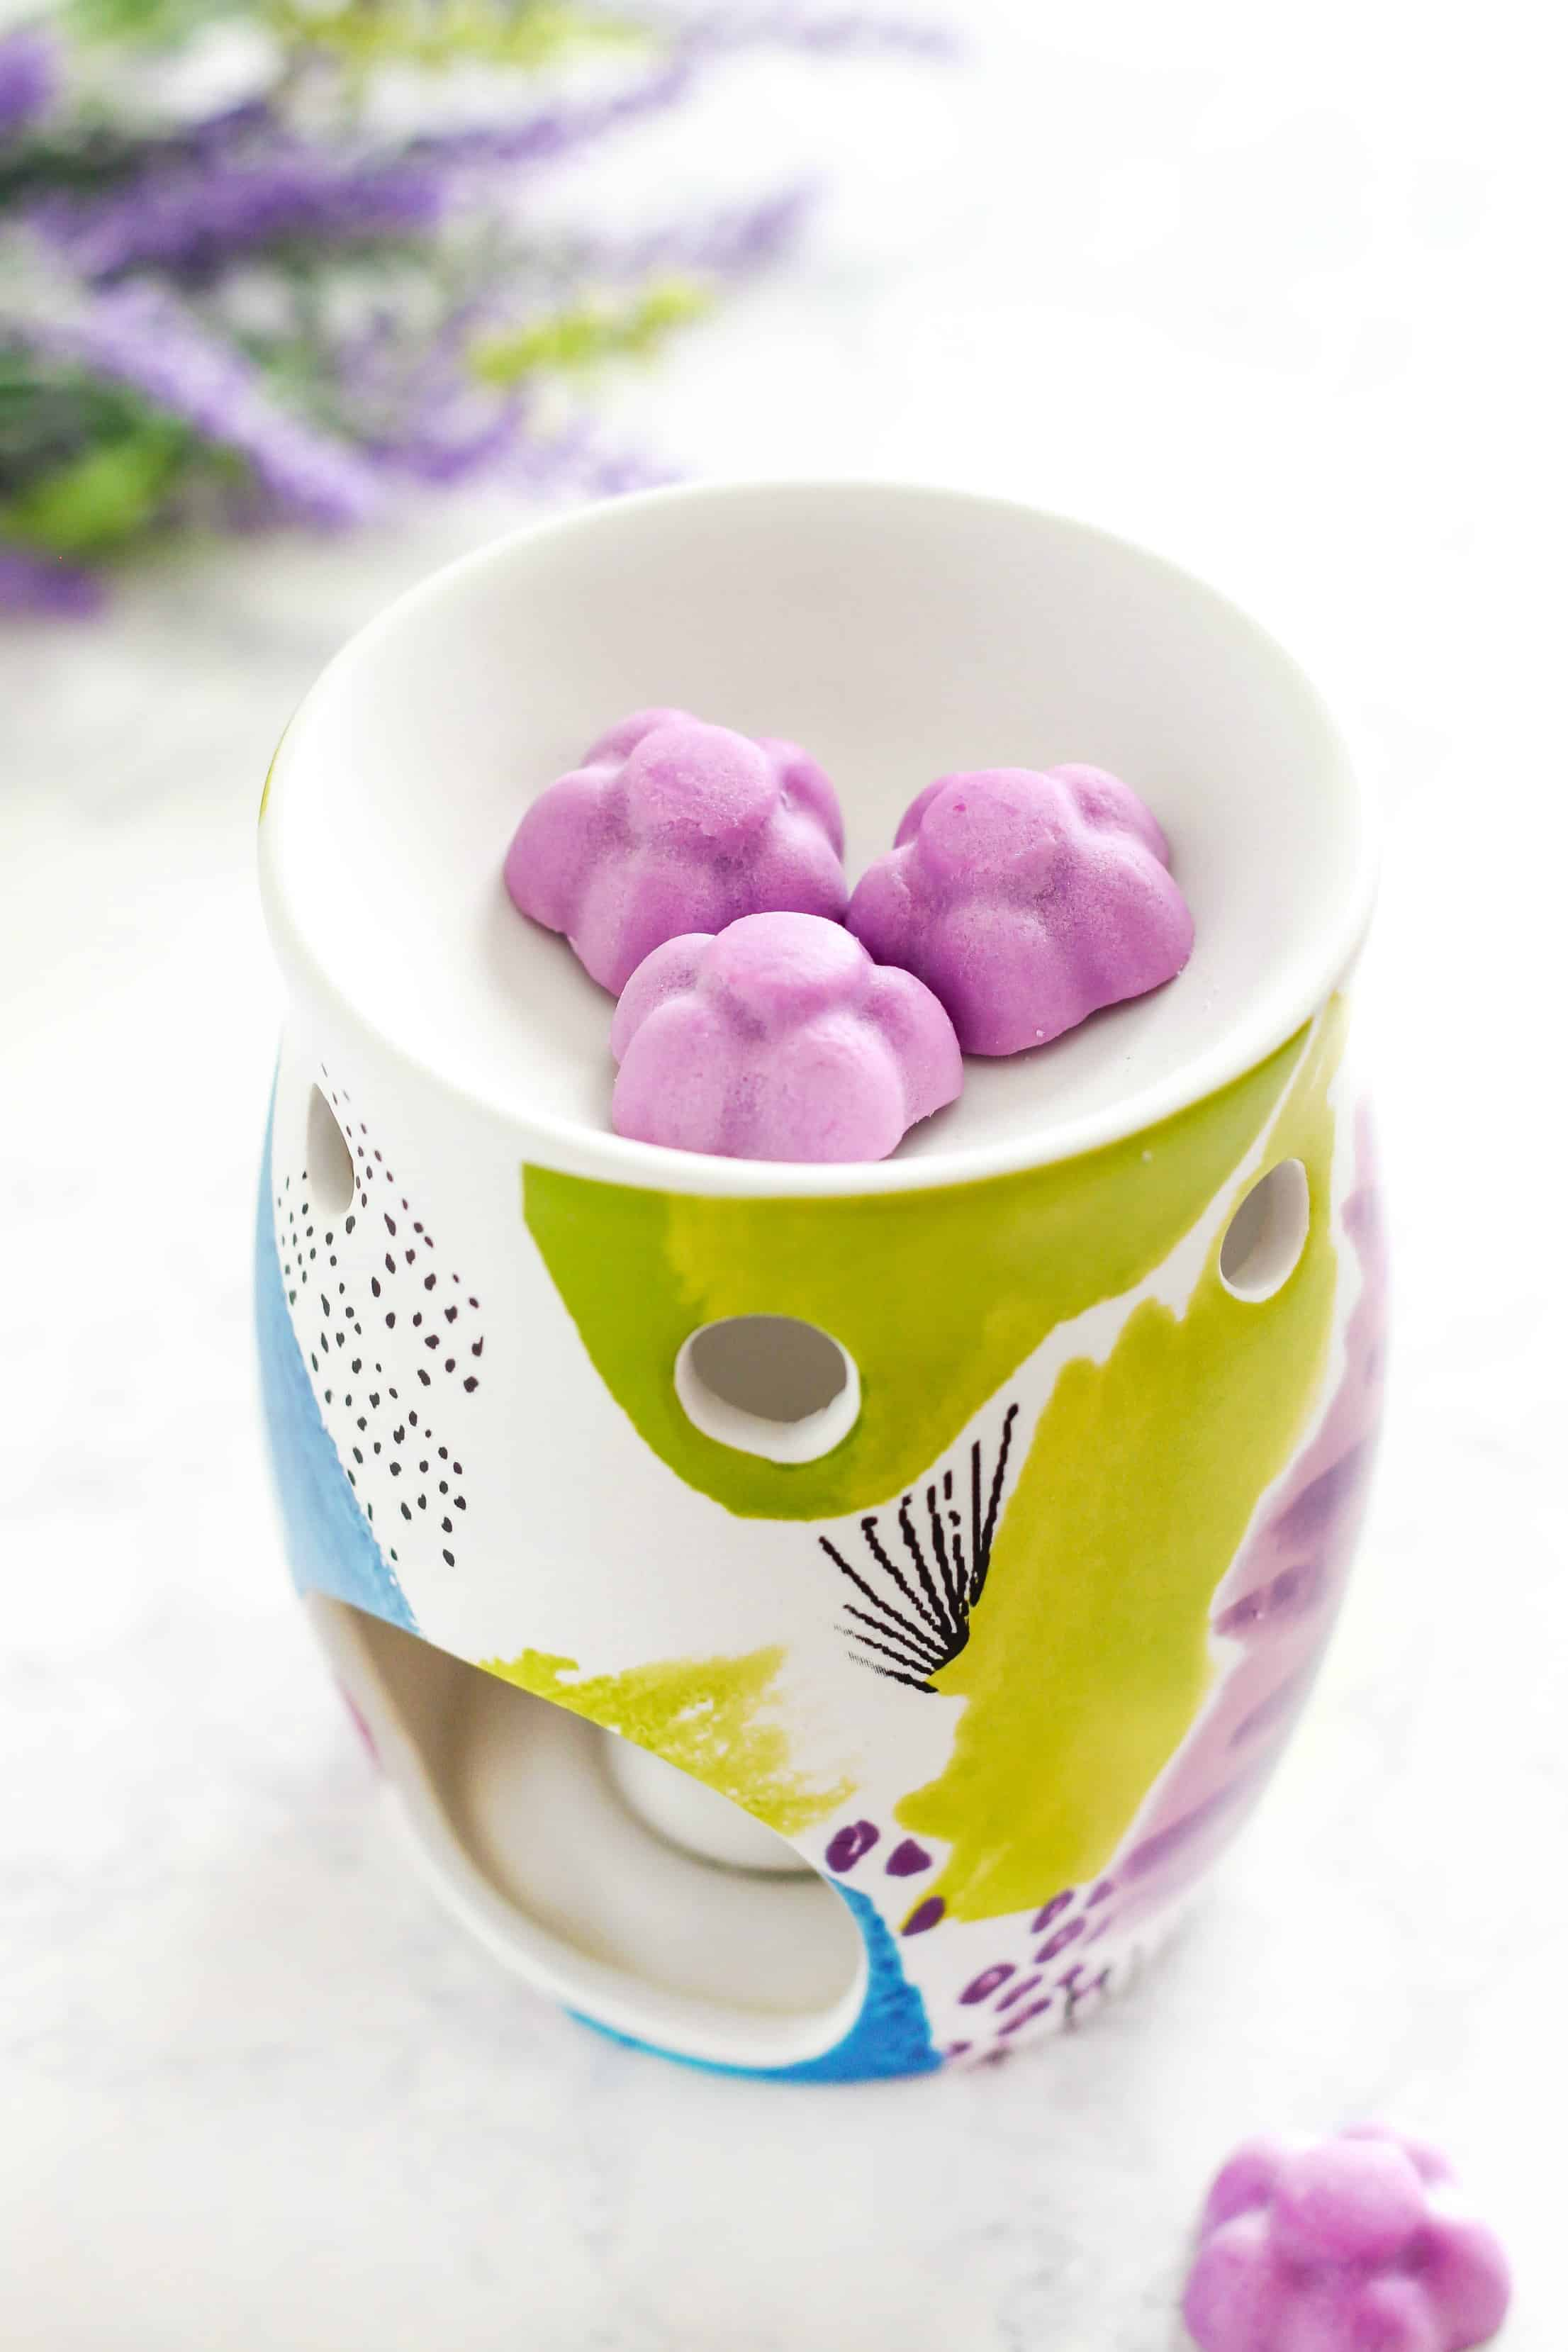 How To Make Scented Wax Melts